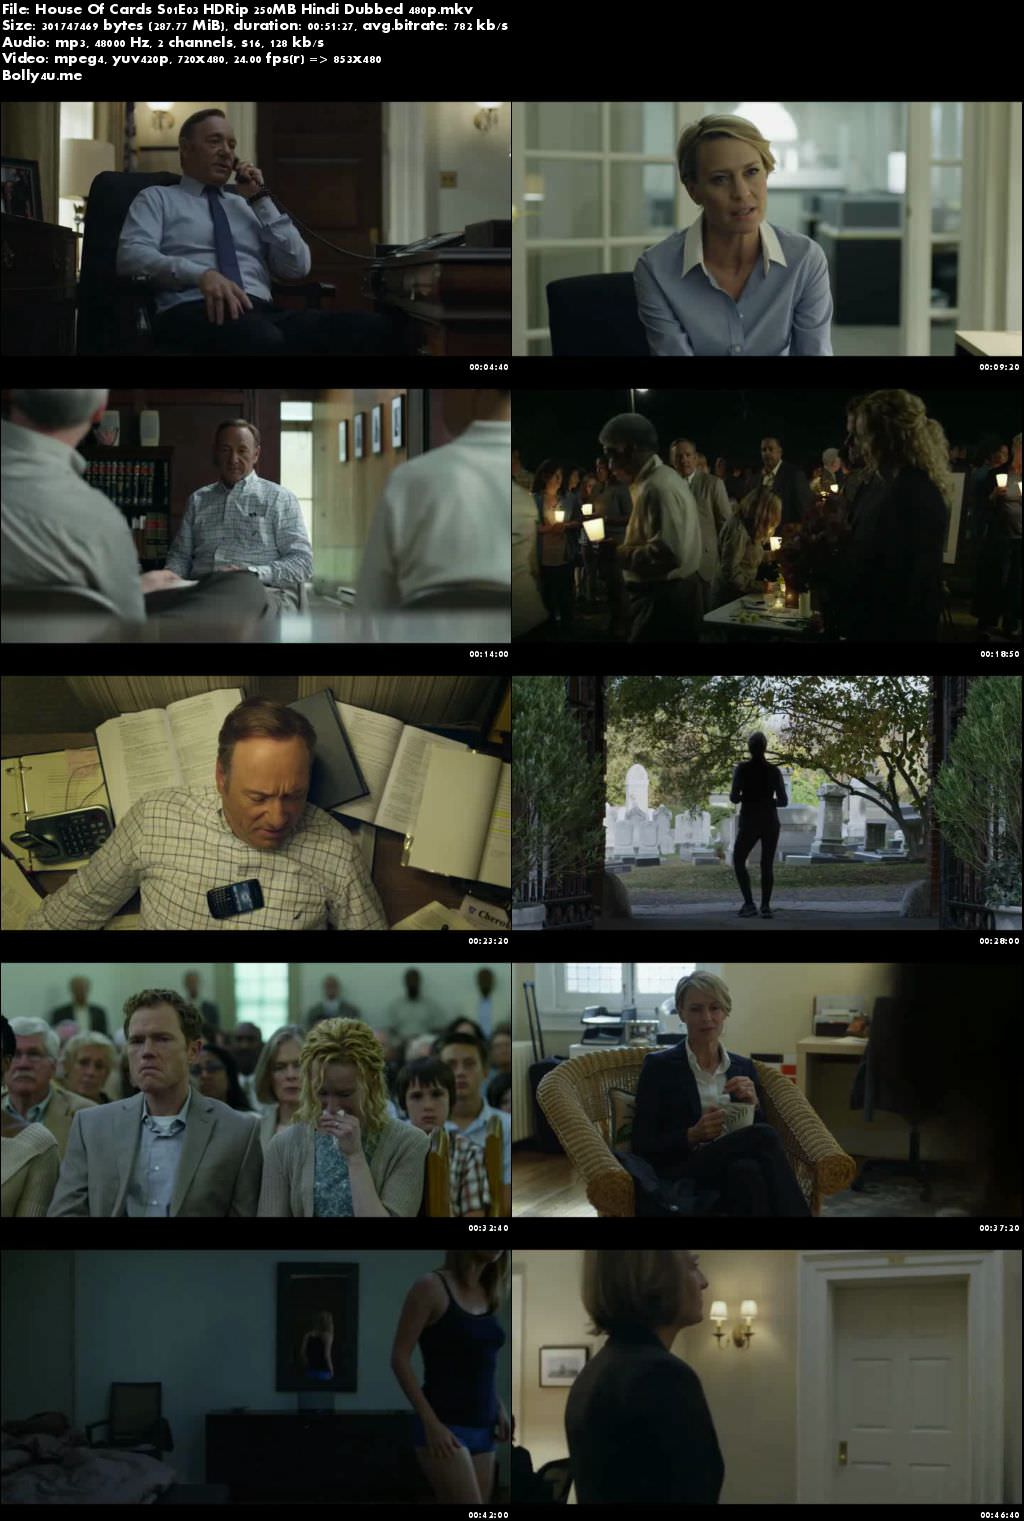 House Of Cards S01E03 HDRip 250MB Hindi Dubbed 480p Download